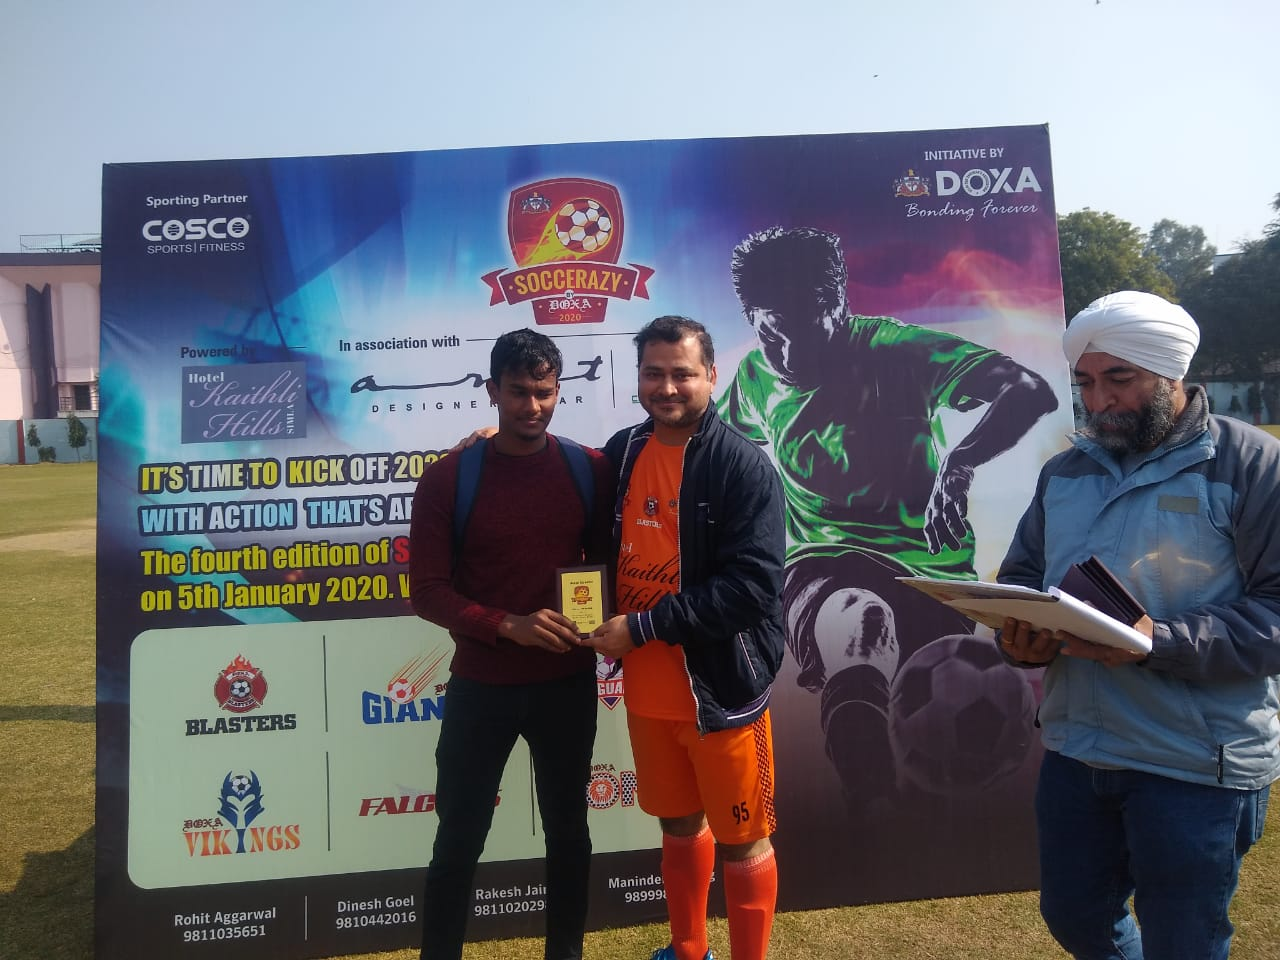 Soccerazy kicks off 4th Edition - Day 1 - 5th Jan, 2020<br>